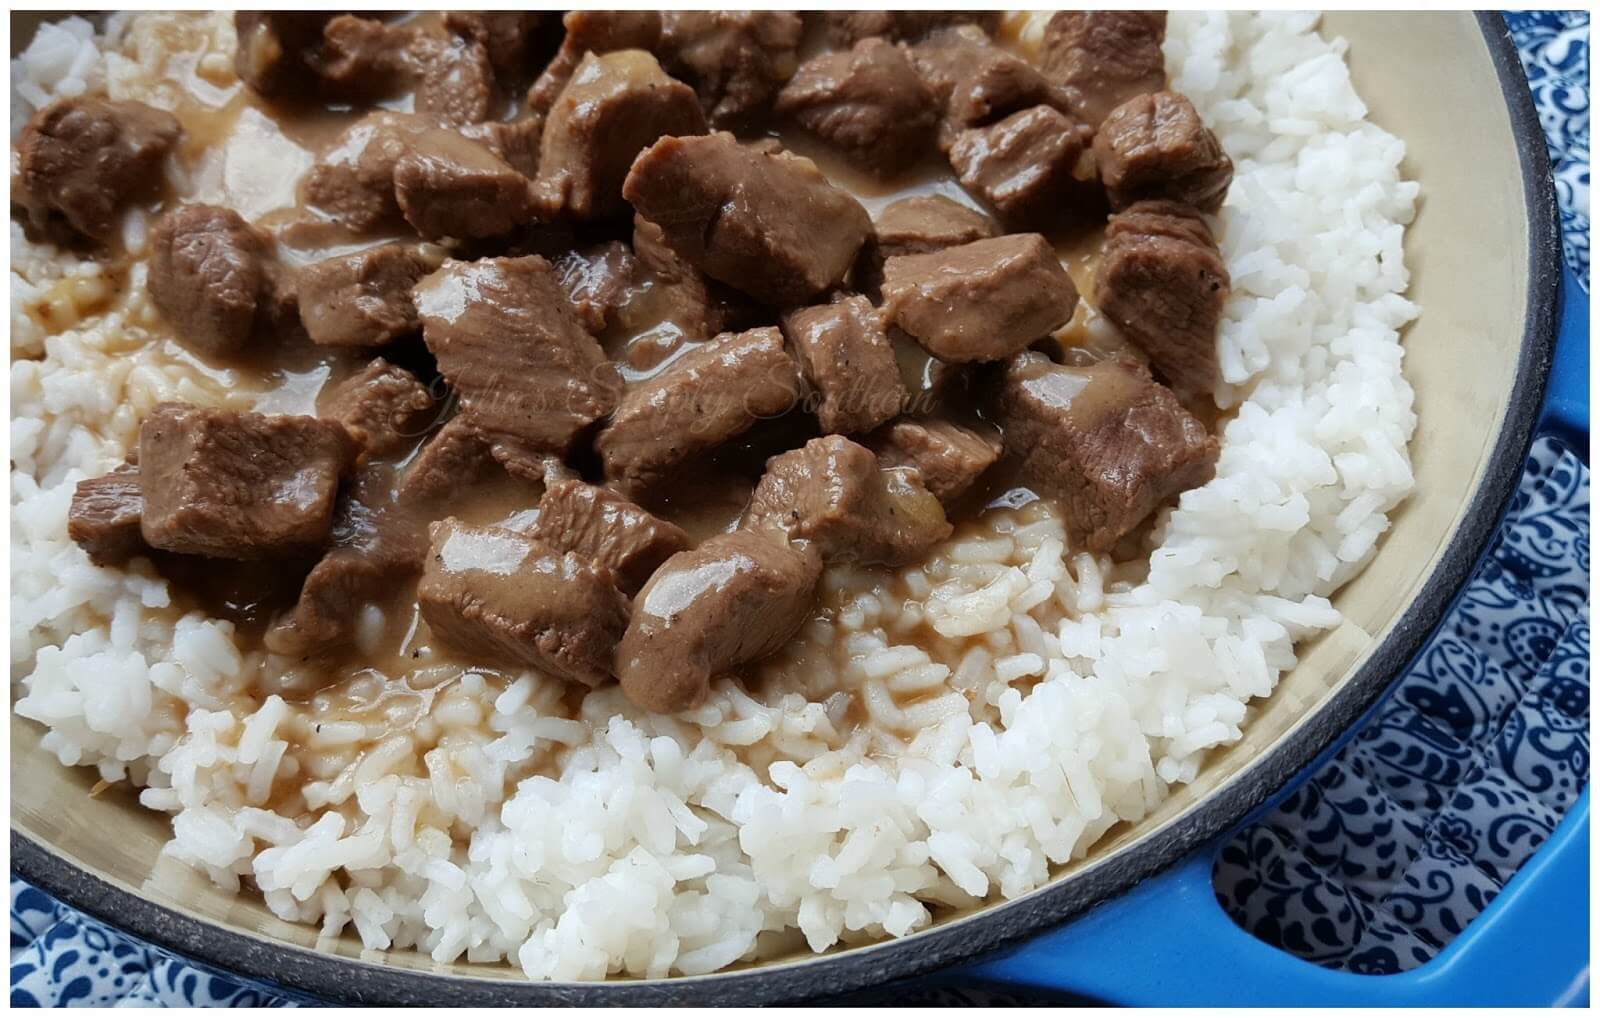 Beef Tips and Rice in a blue enamel cast iron dish